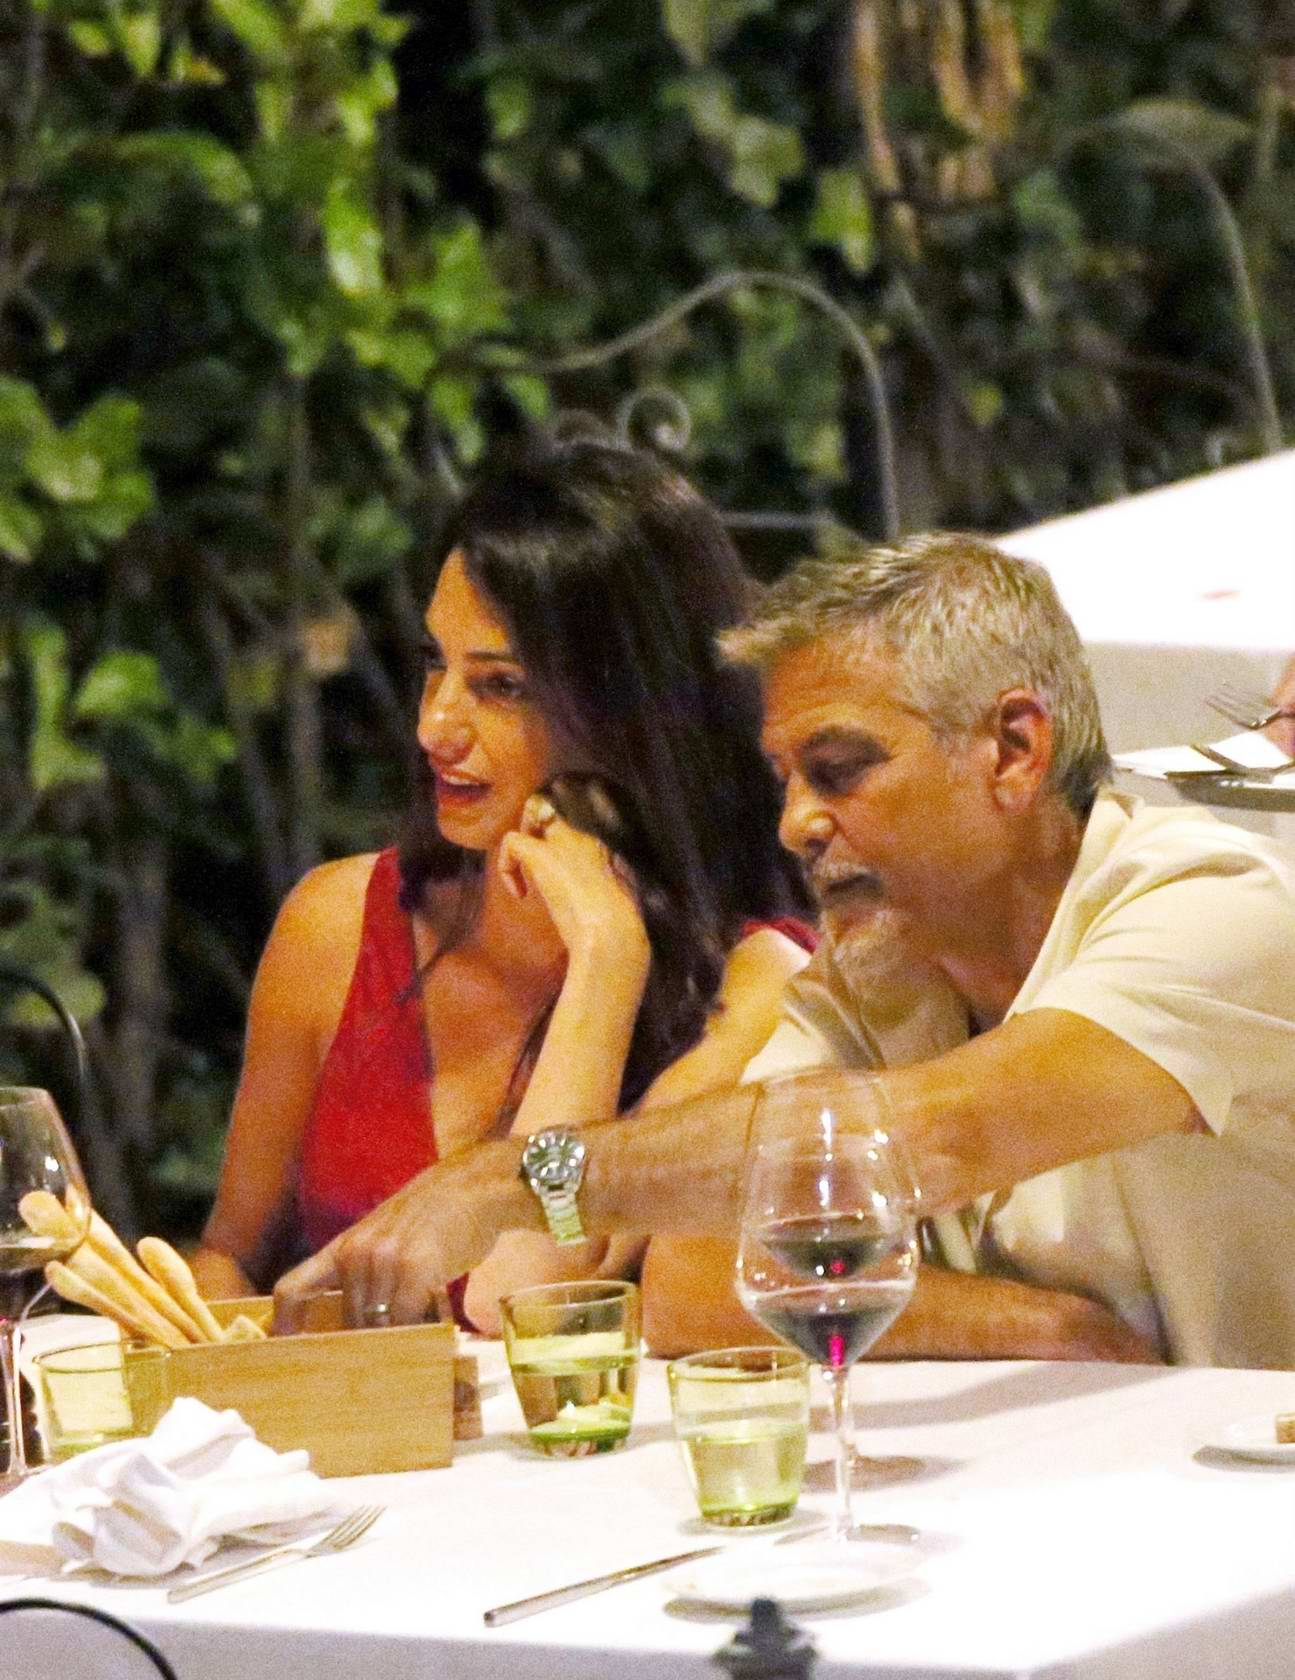 pics Amal clooney and george clooney candlelight dinner at le darsene in bellagio italy